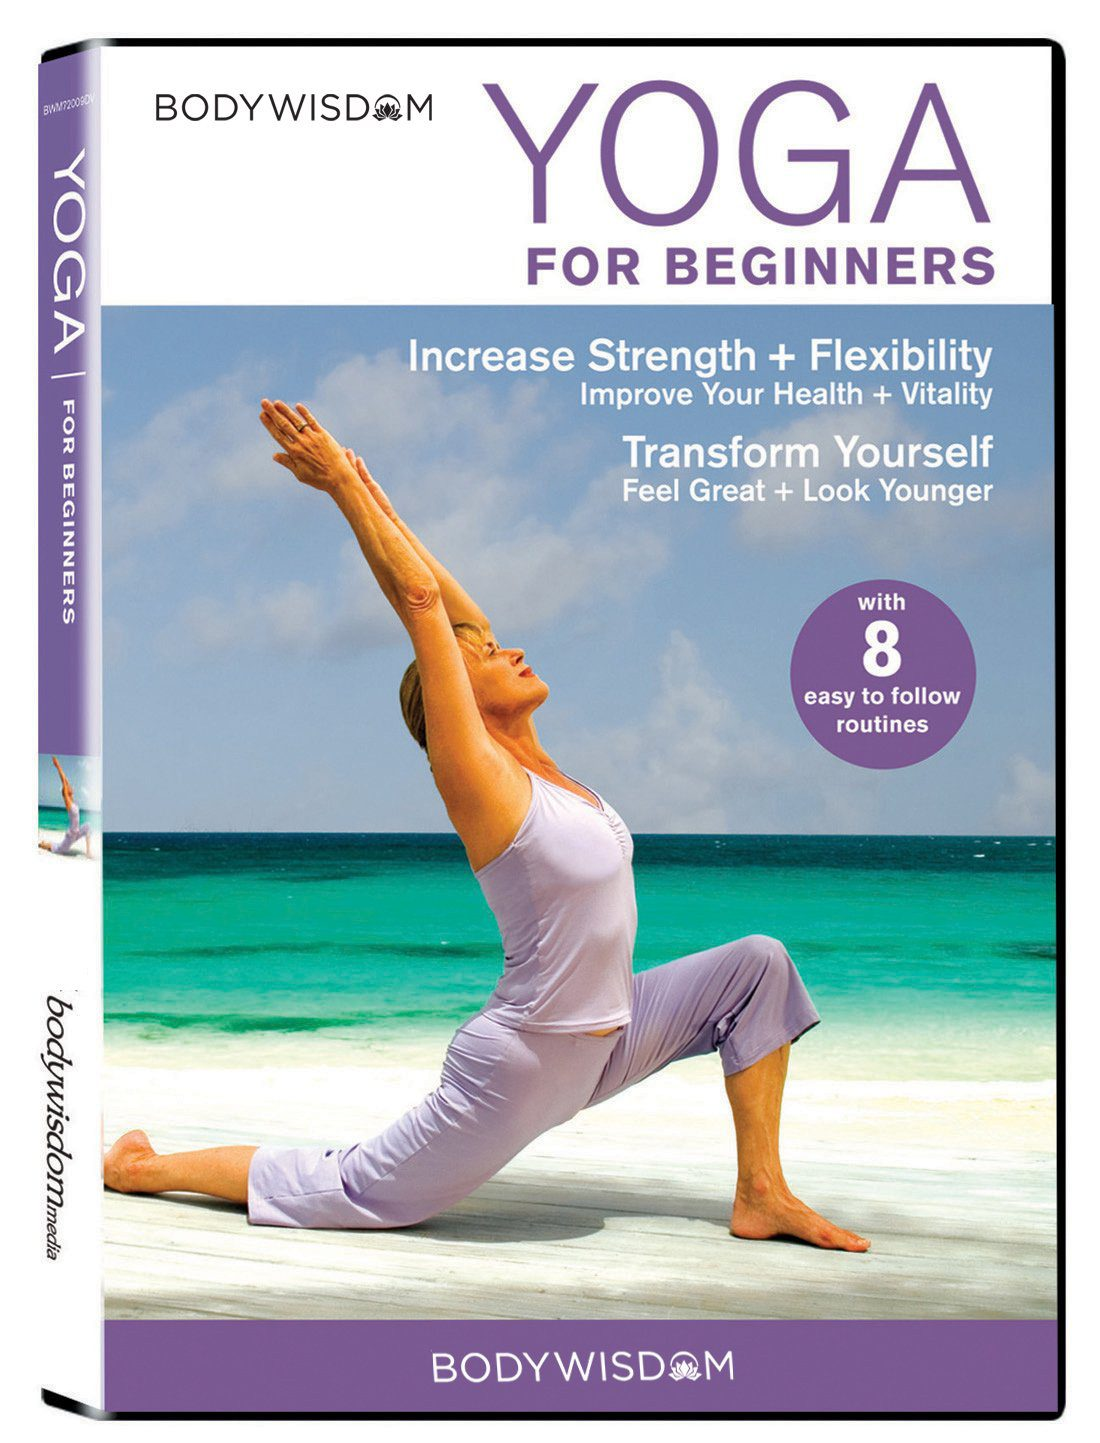 Yoga for Beginners 8 Yoga Video Routines for Beginners | Best Yoga DVDs